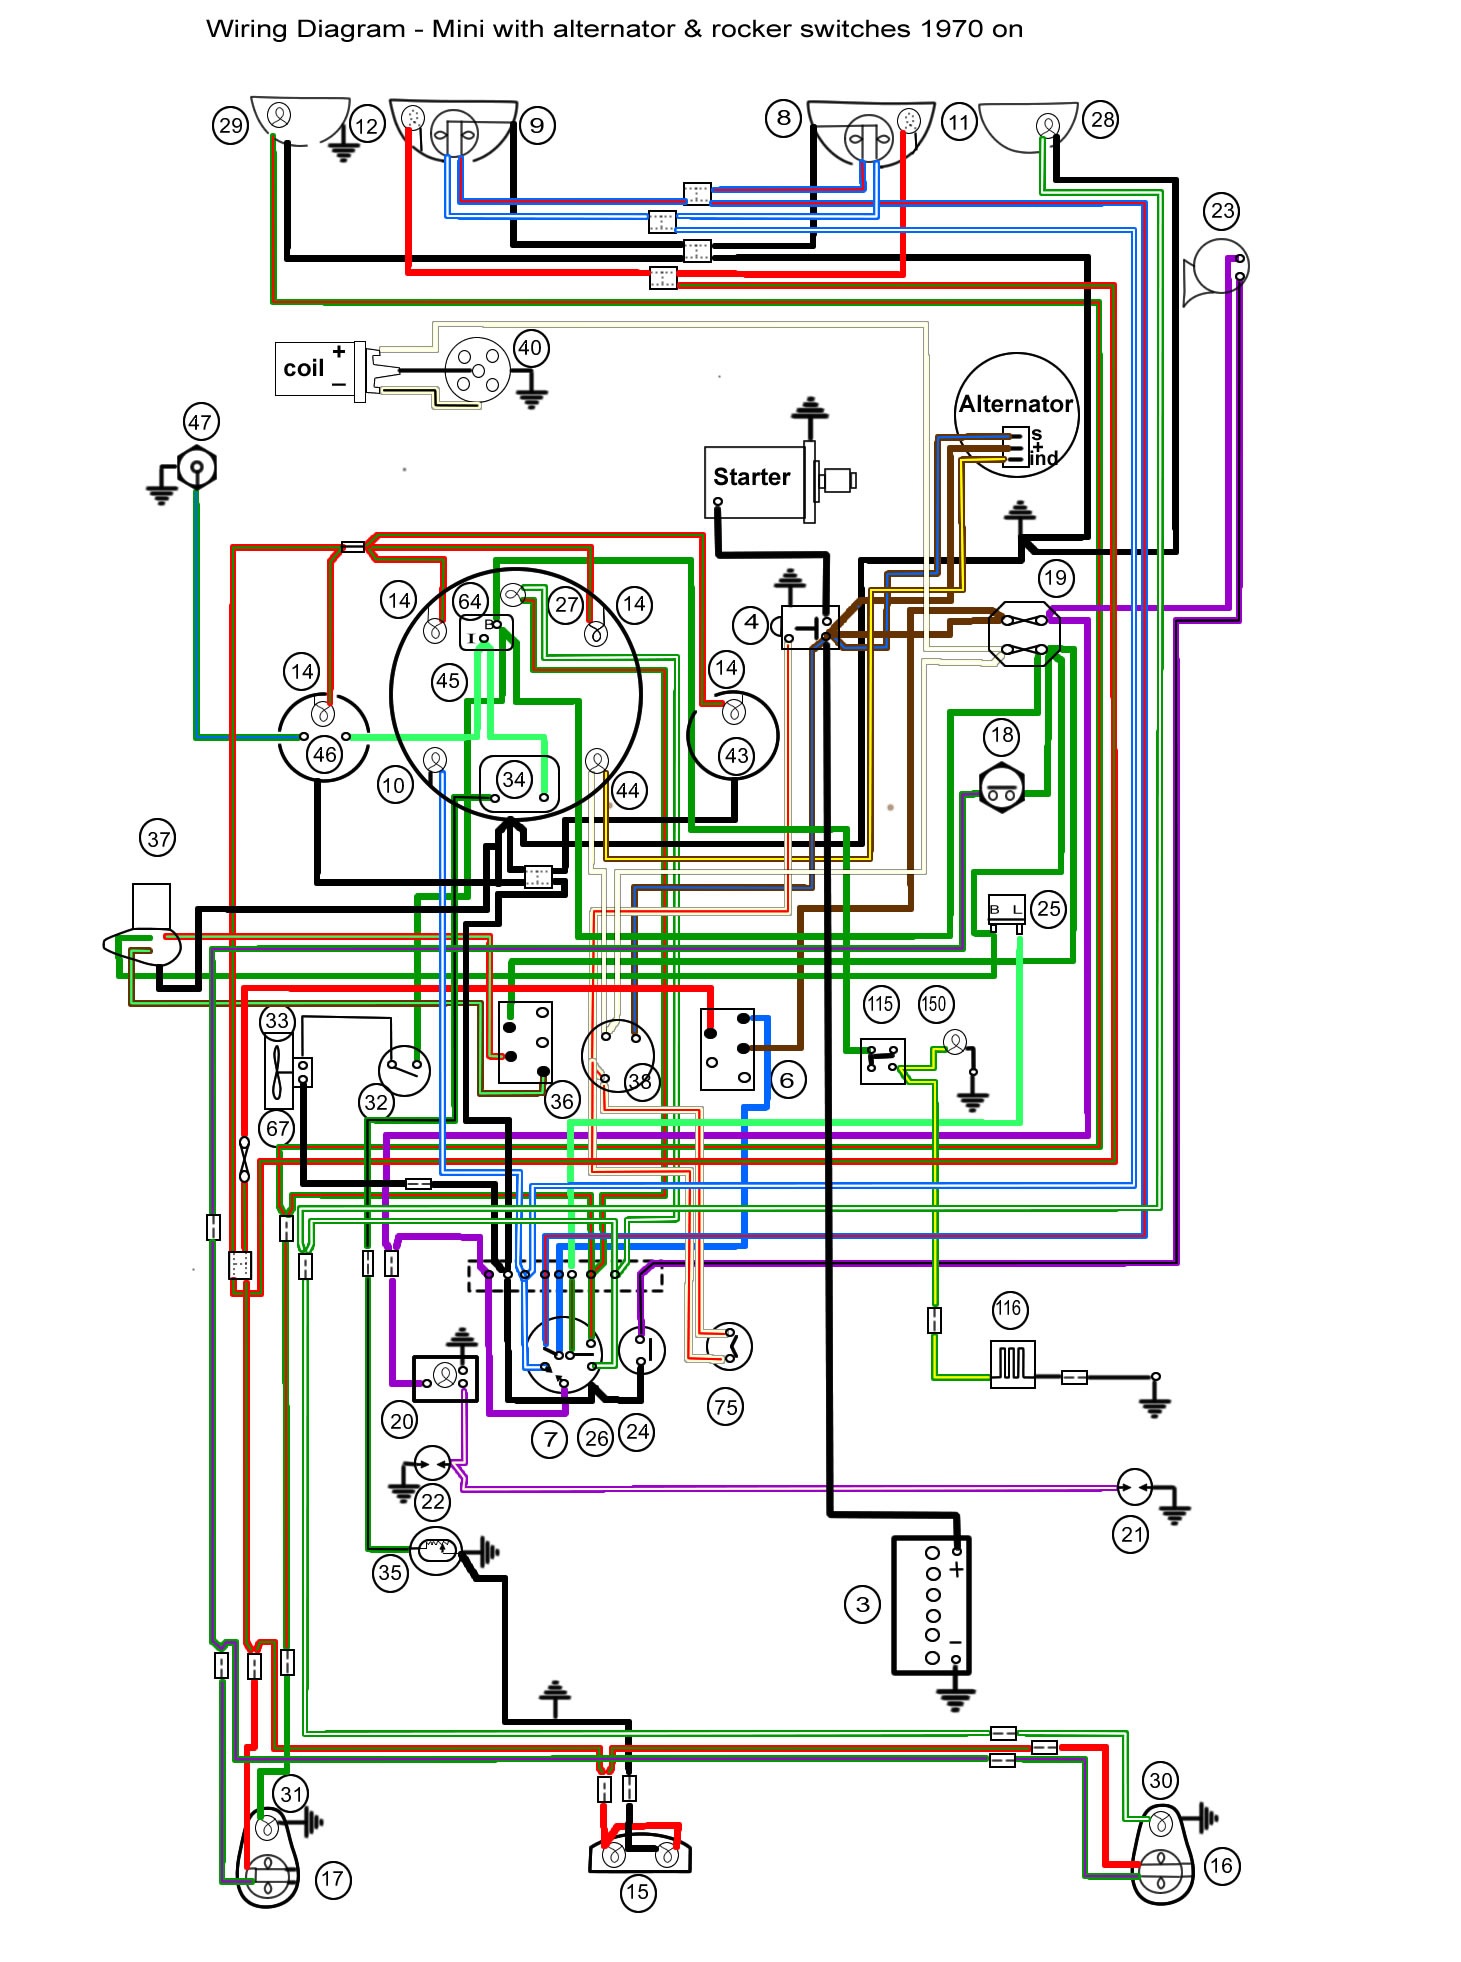 Mini Clockspring Wiring Diagram - Wiring Diagrams DataUssel